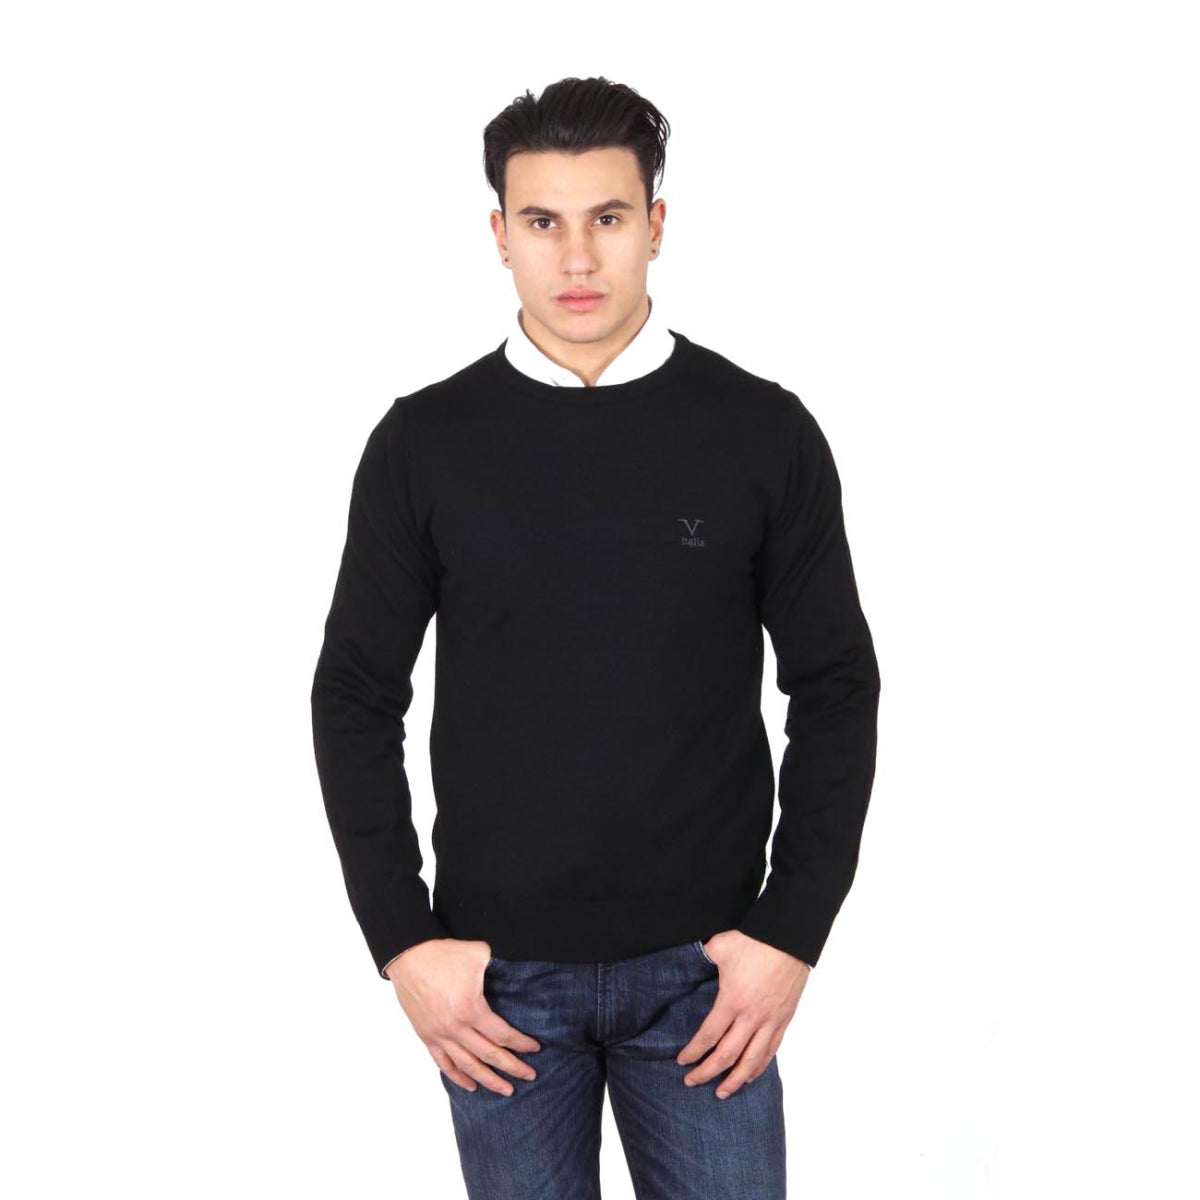 V 1969 Italia mens round neck sweater 9800 GIROCOLLO NERO